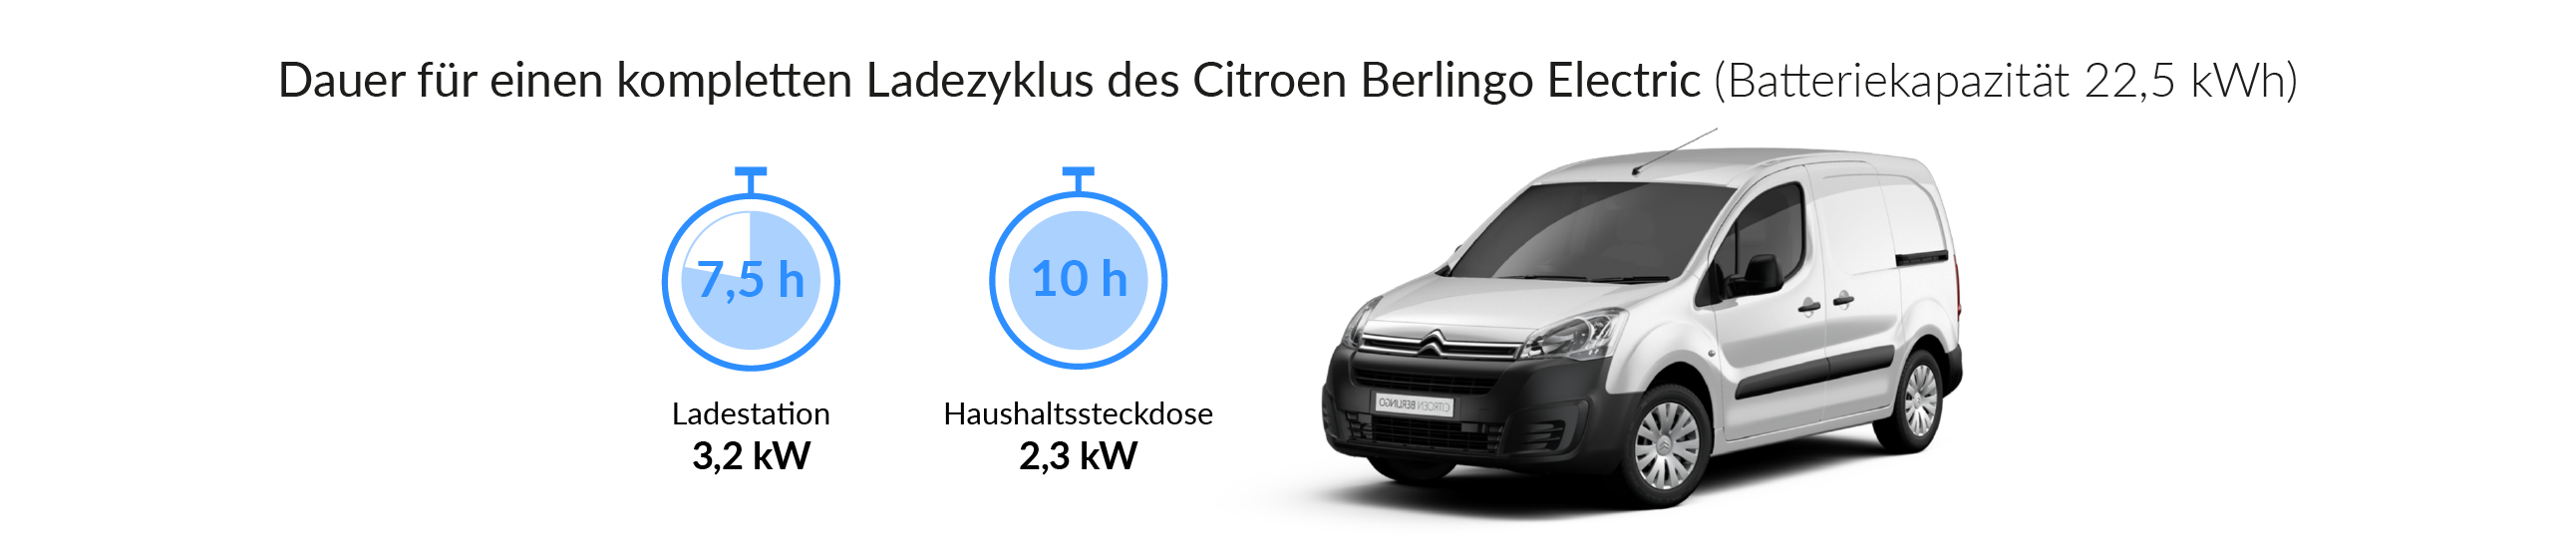 Ladezeiten des Citroen Berlingo Electric